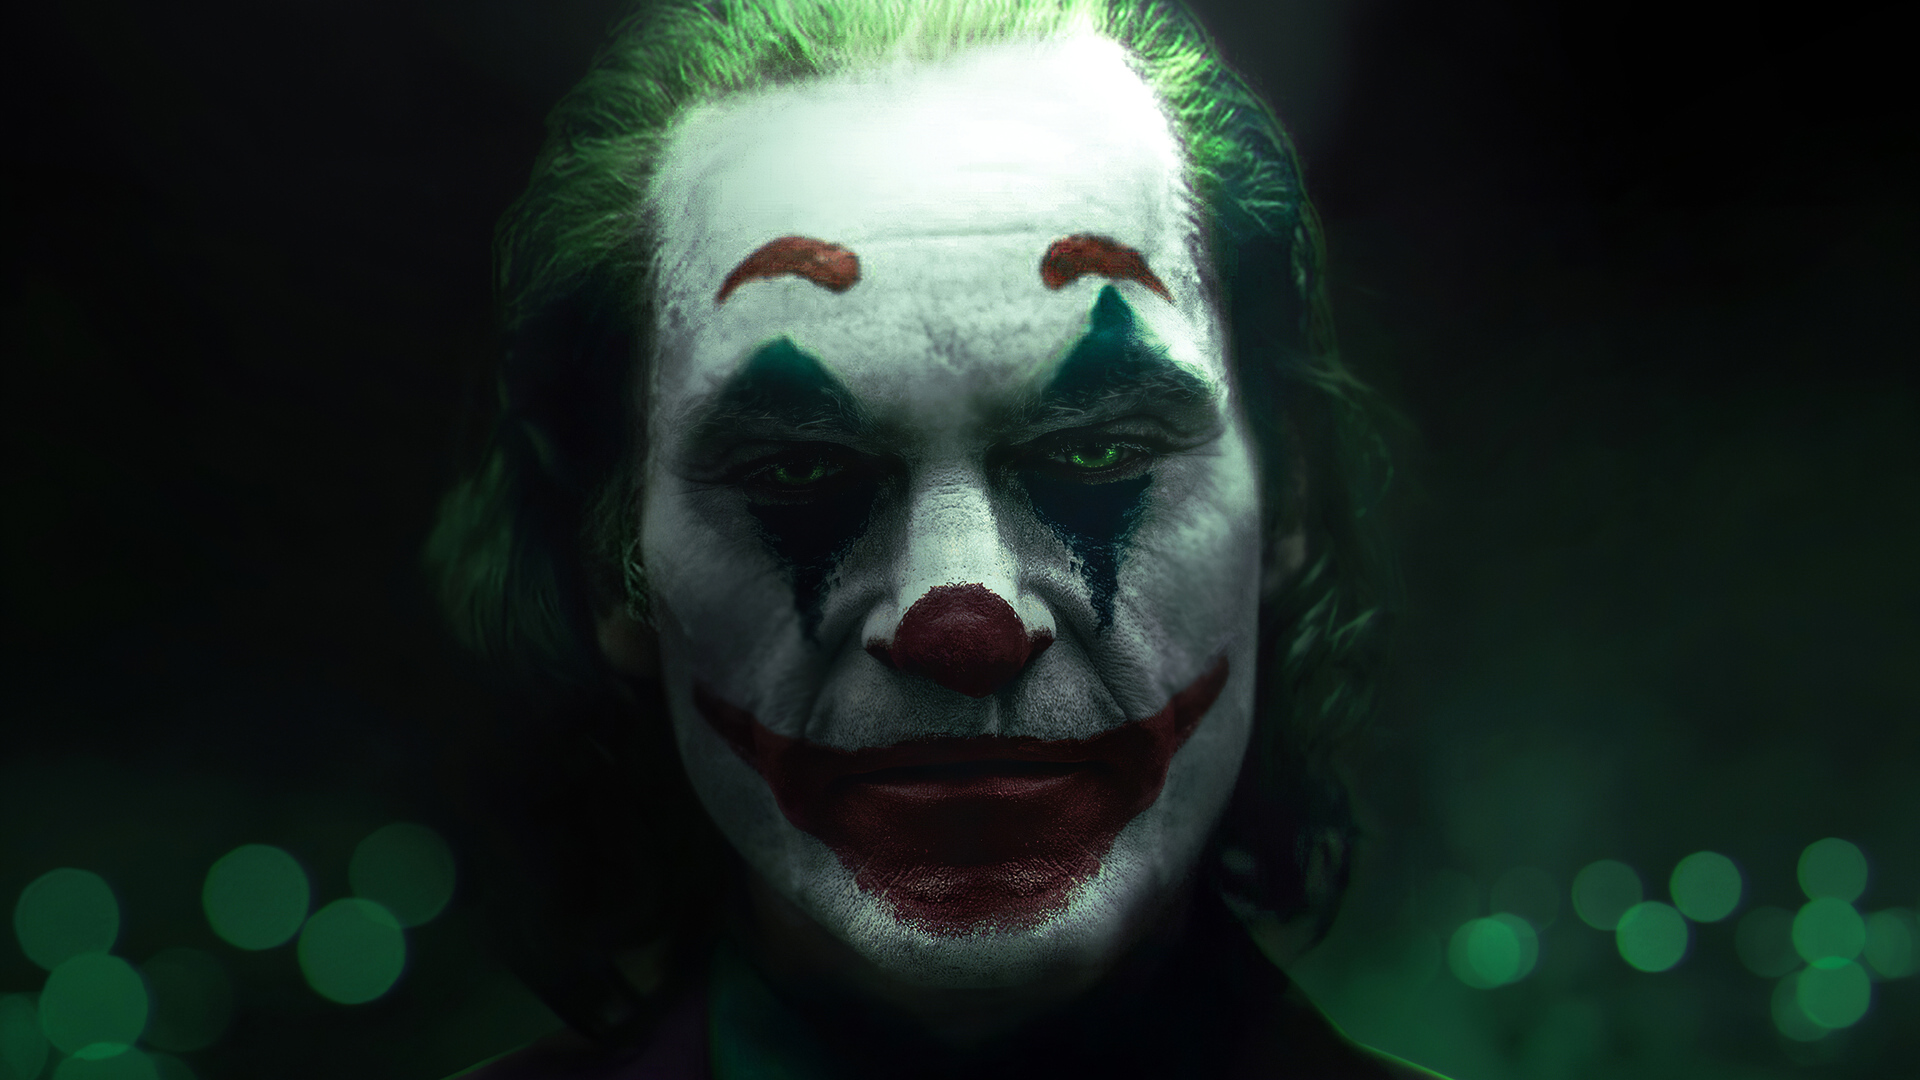 1920x1080 4k Joker 2020 Laptop Full Hd 1080p Hd 4k Wallpapers Images Backgrounds Photos And Pictures